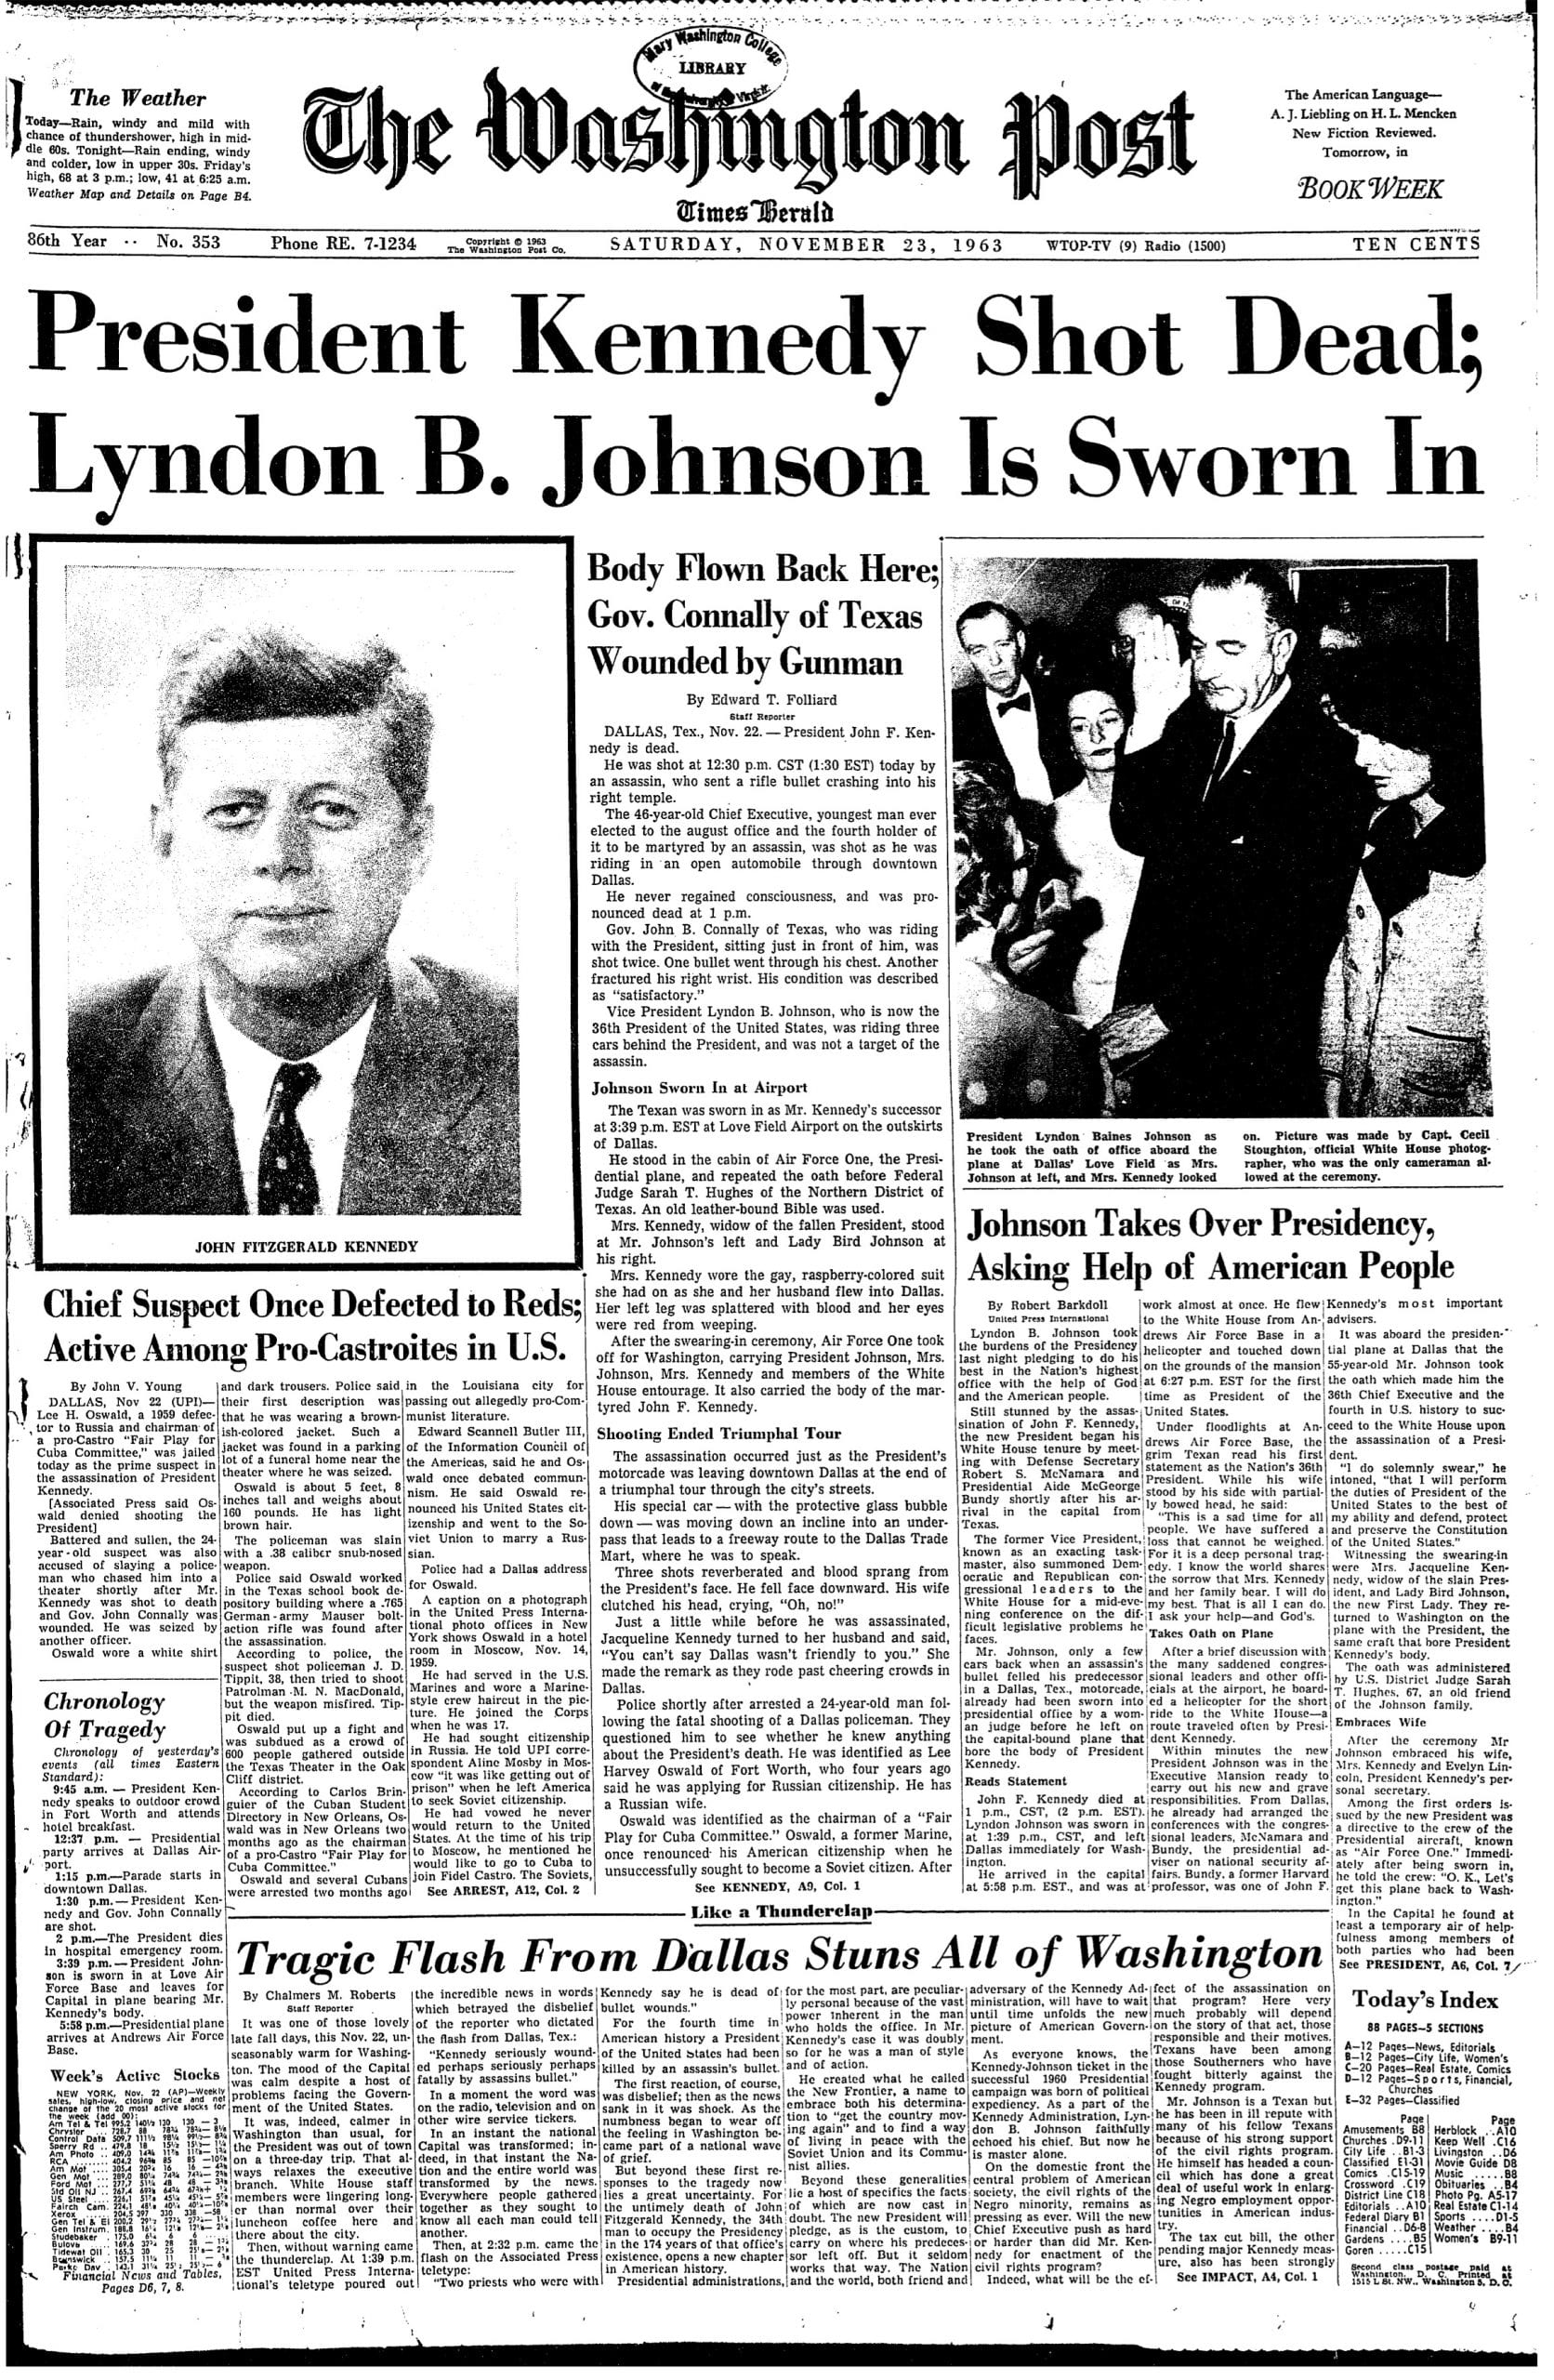 front page of the Washington Post - November 23rd, 1963